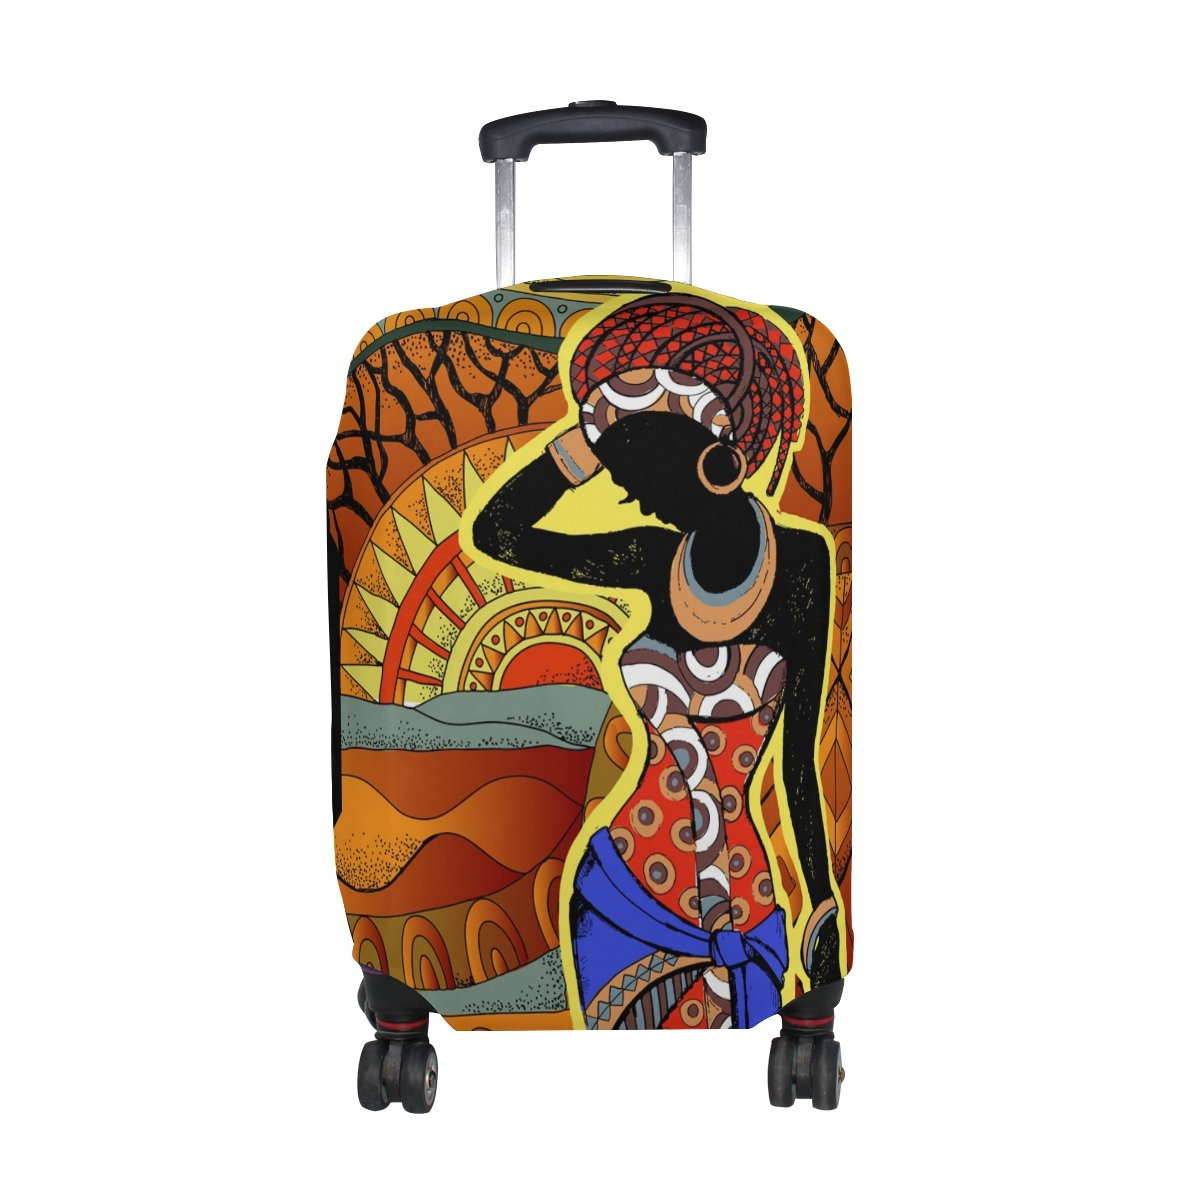 My Daily African Woman Luggage Cover Fits 30-32 Inch Suitcase Spandex Travel Protector XL